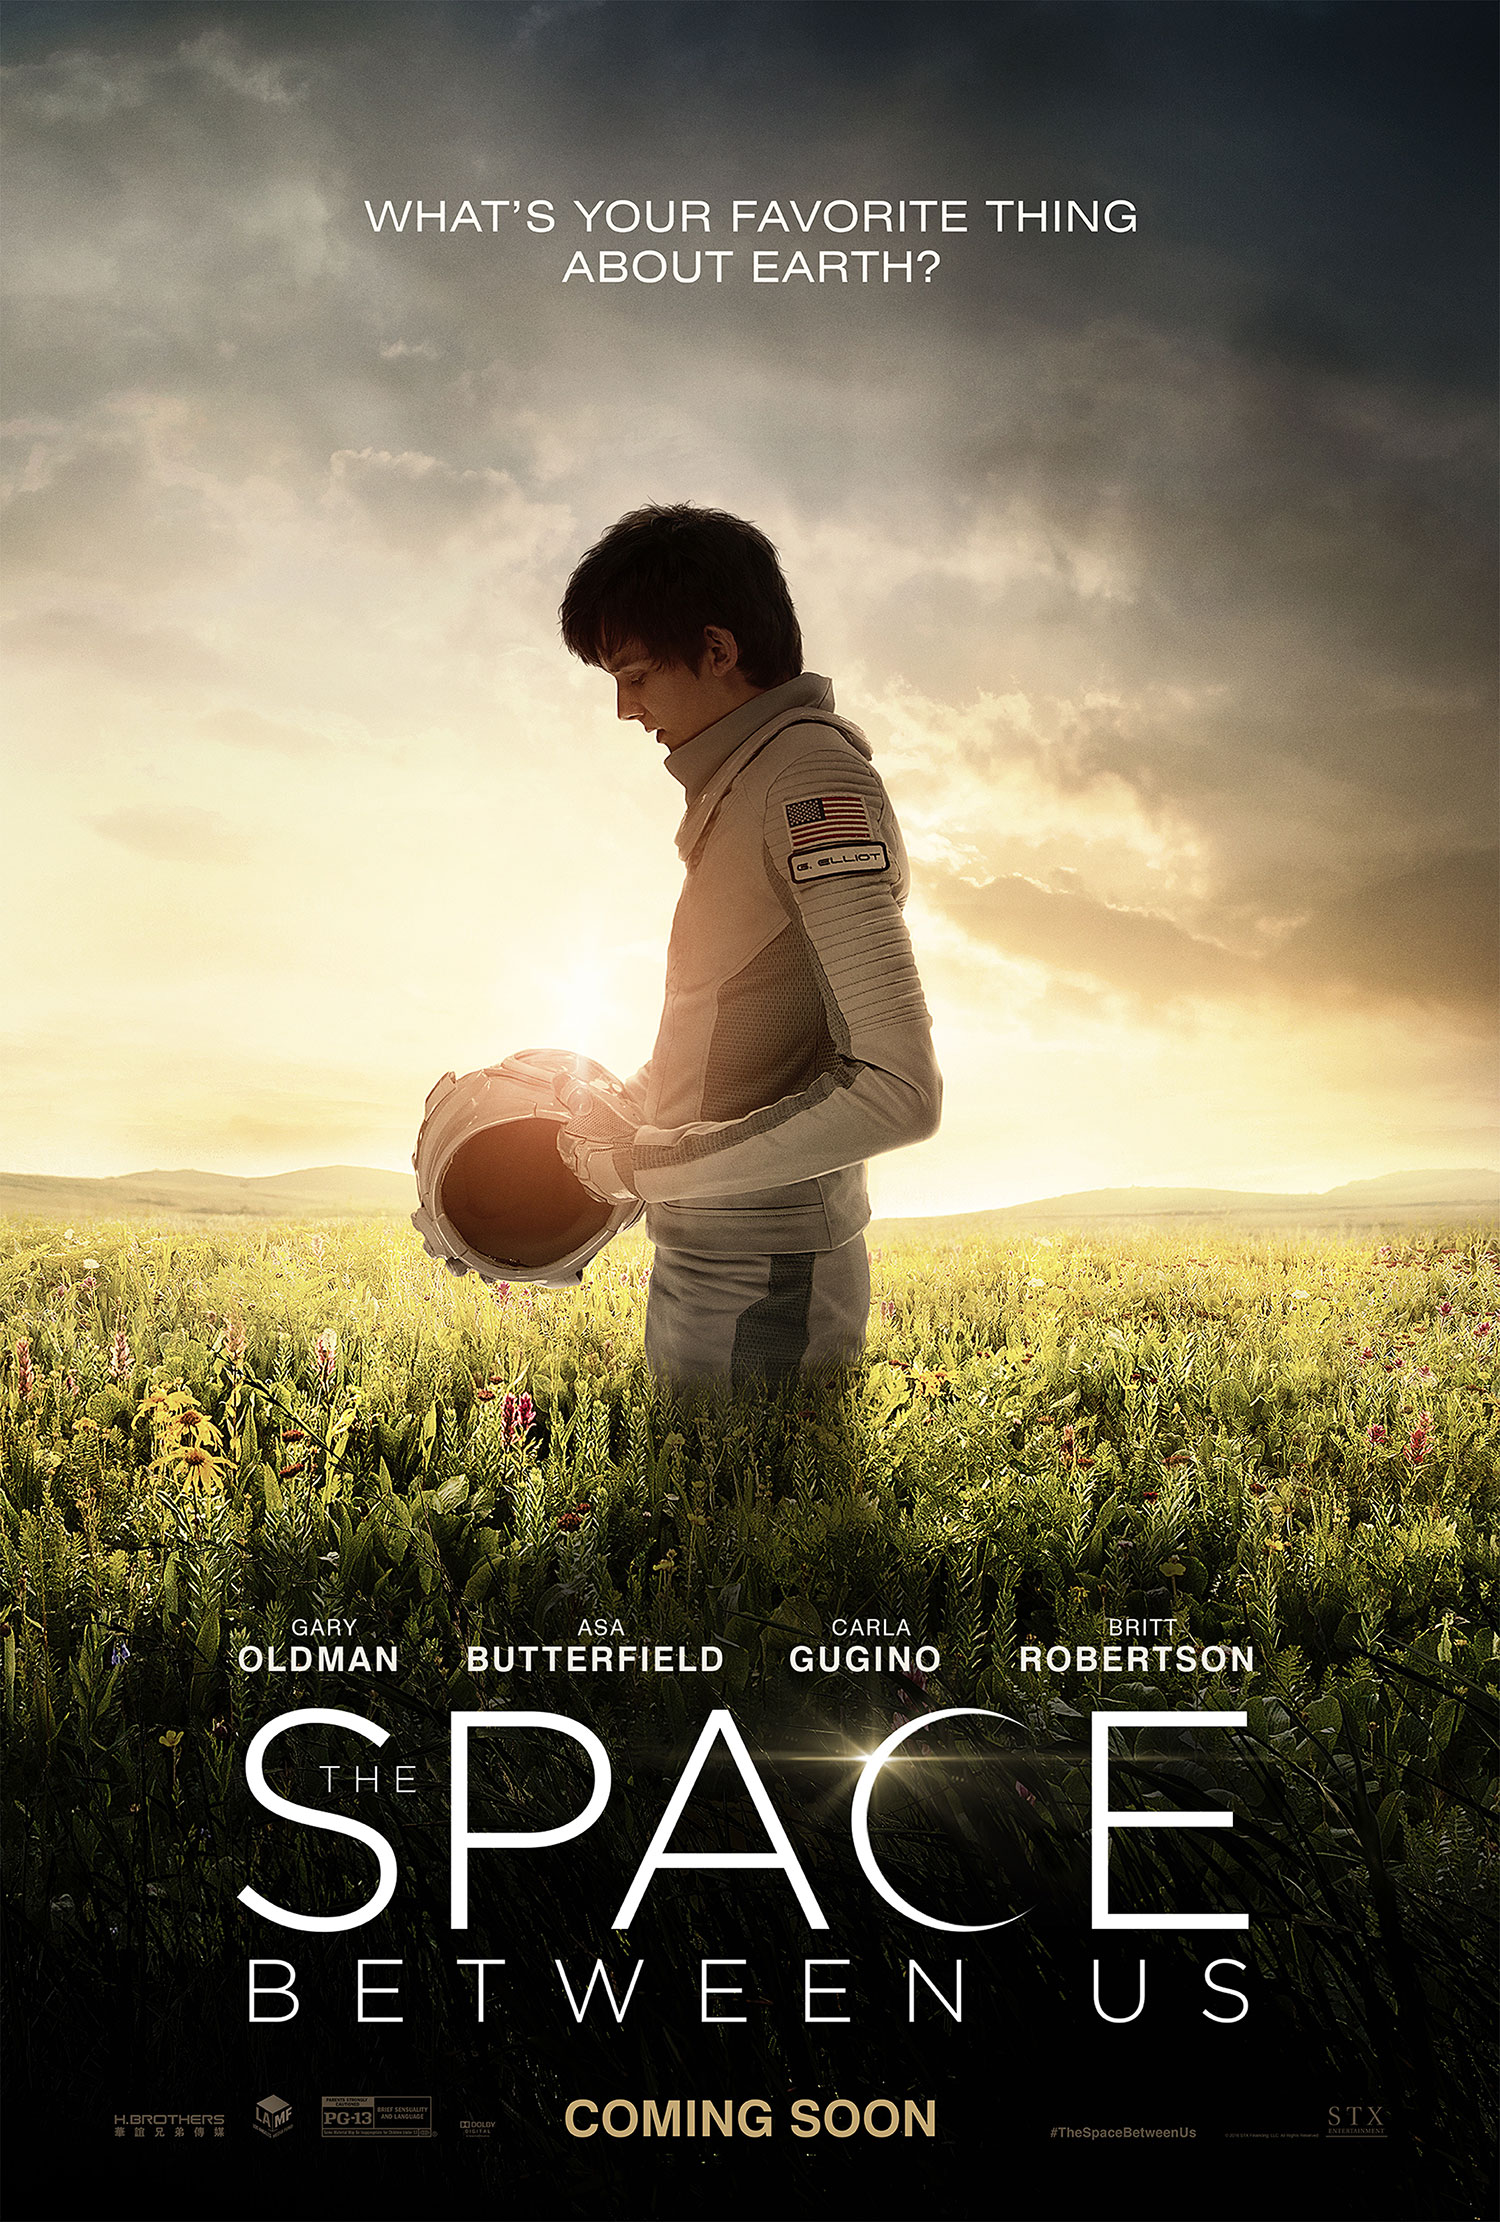 the space between us full movie online free download